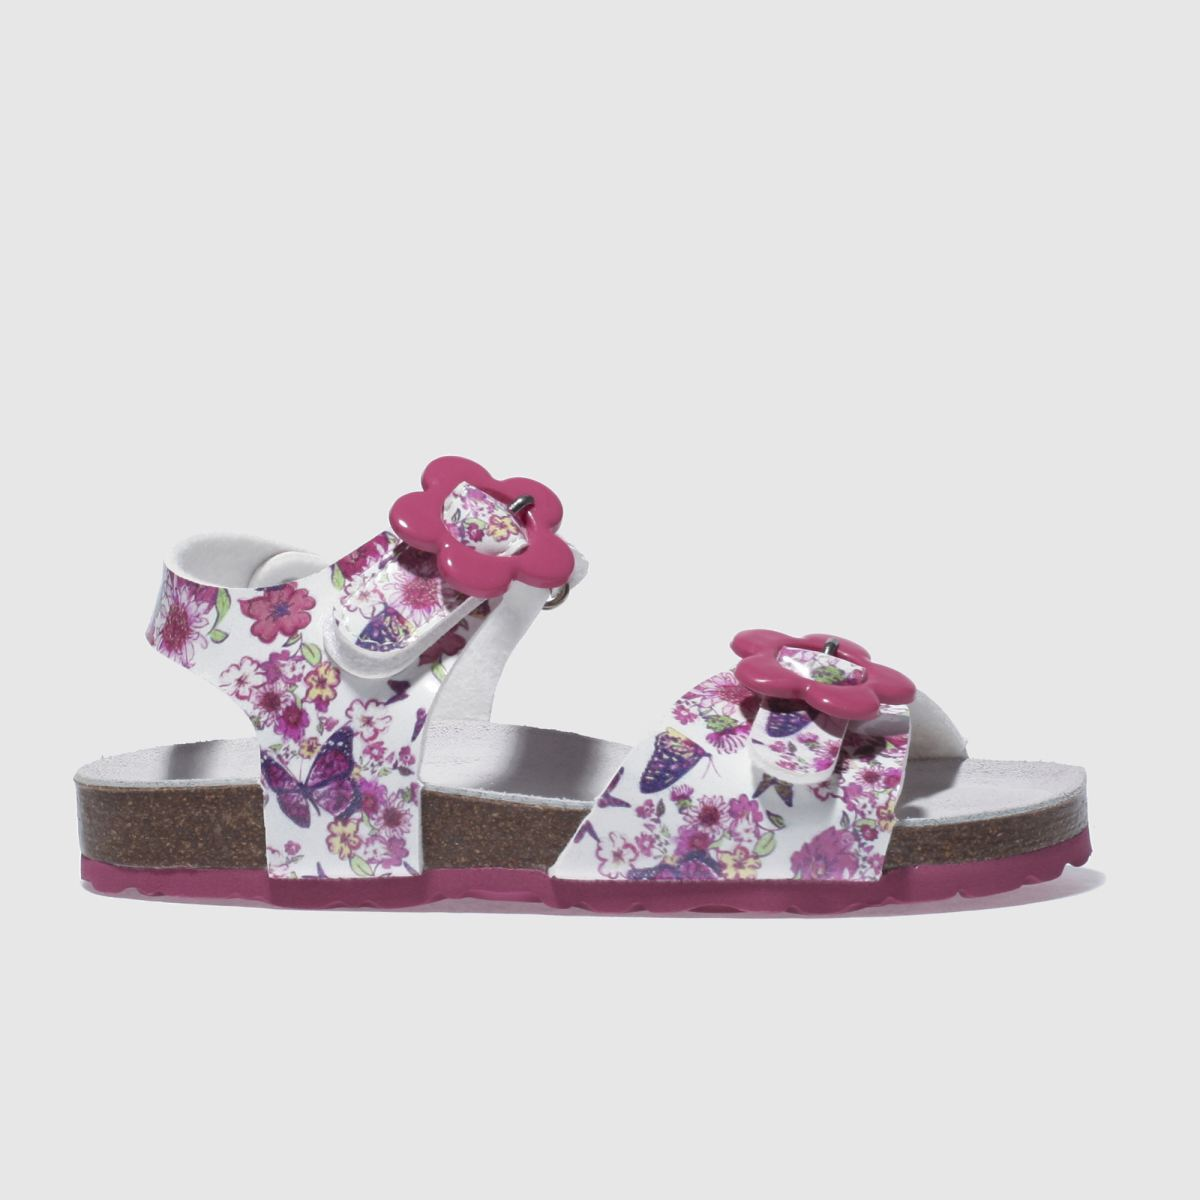 Lelli Kelly Lelli Kelly  White & Pink Sonia Sandal Girls Junior Sandals